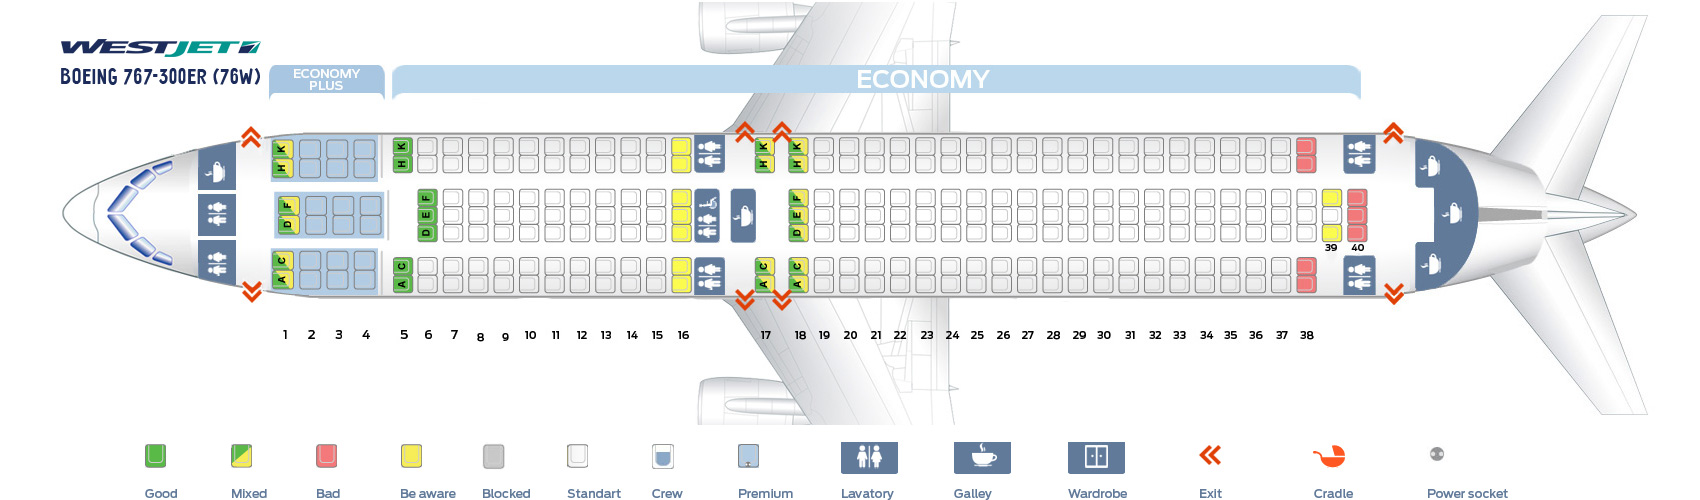 Airplane Seat Chart American Airlines Is Cutting More